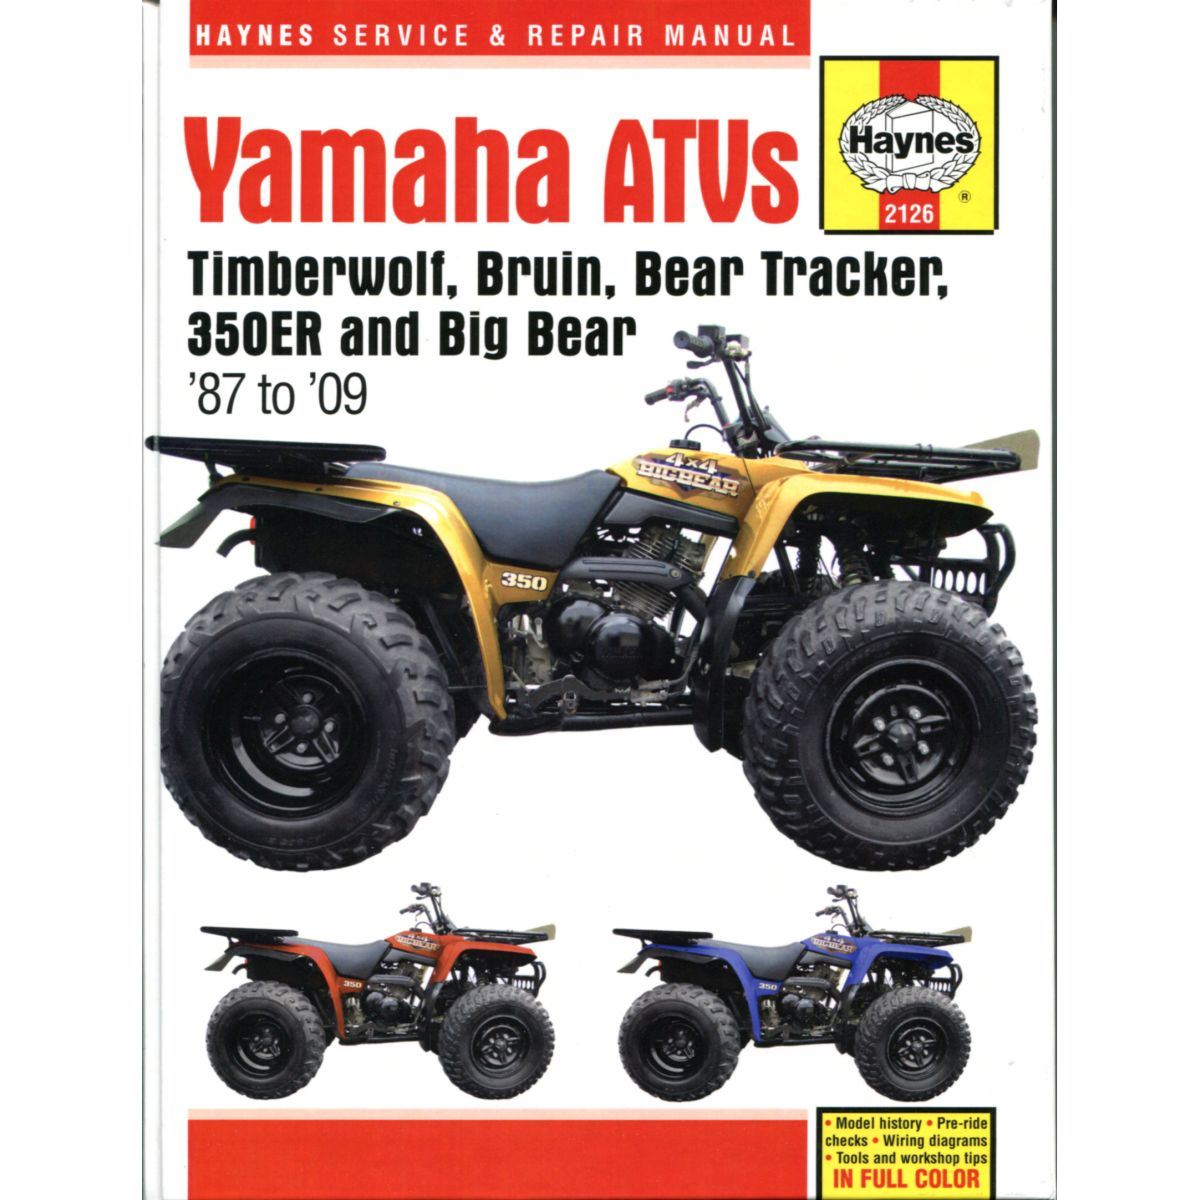 Manual Haynes For 1999 Yamaha Yfm 250 Xl Bear Tracker